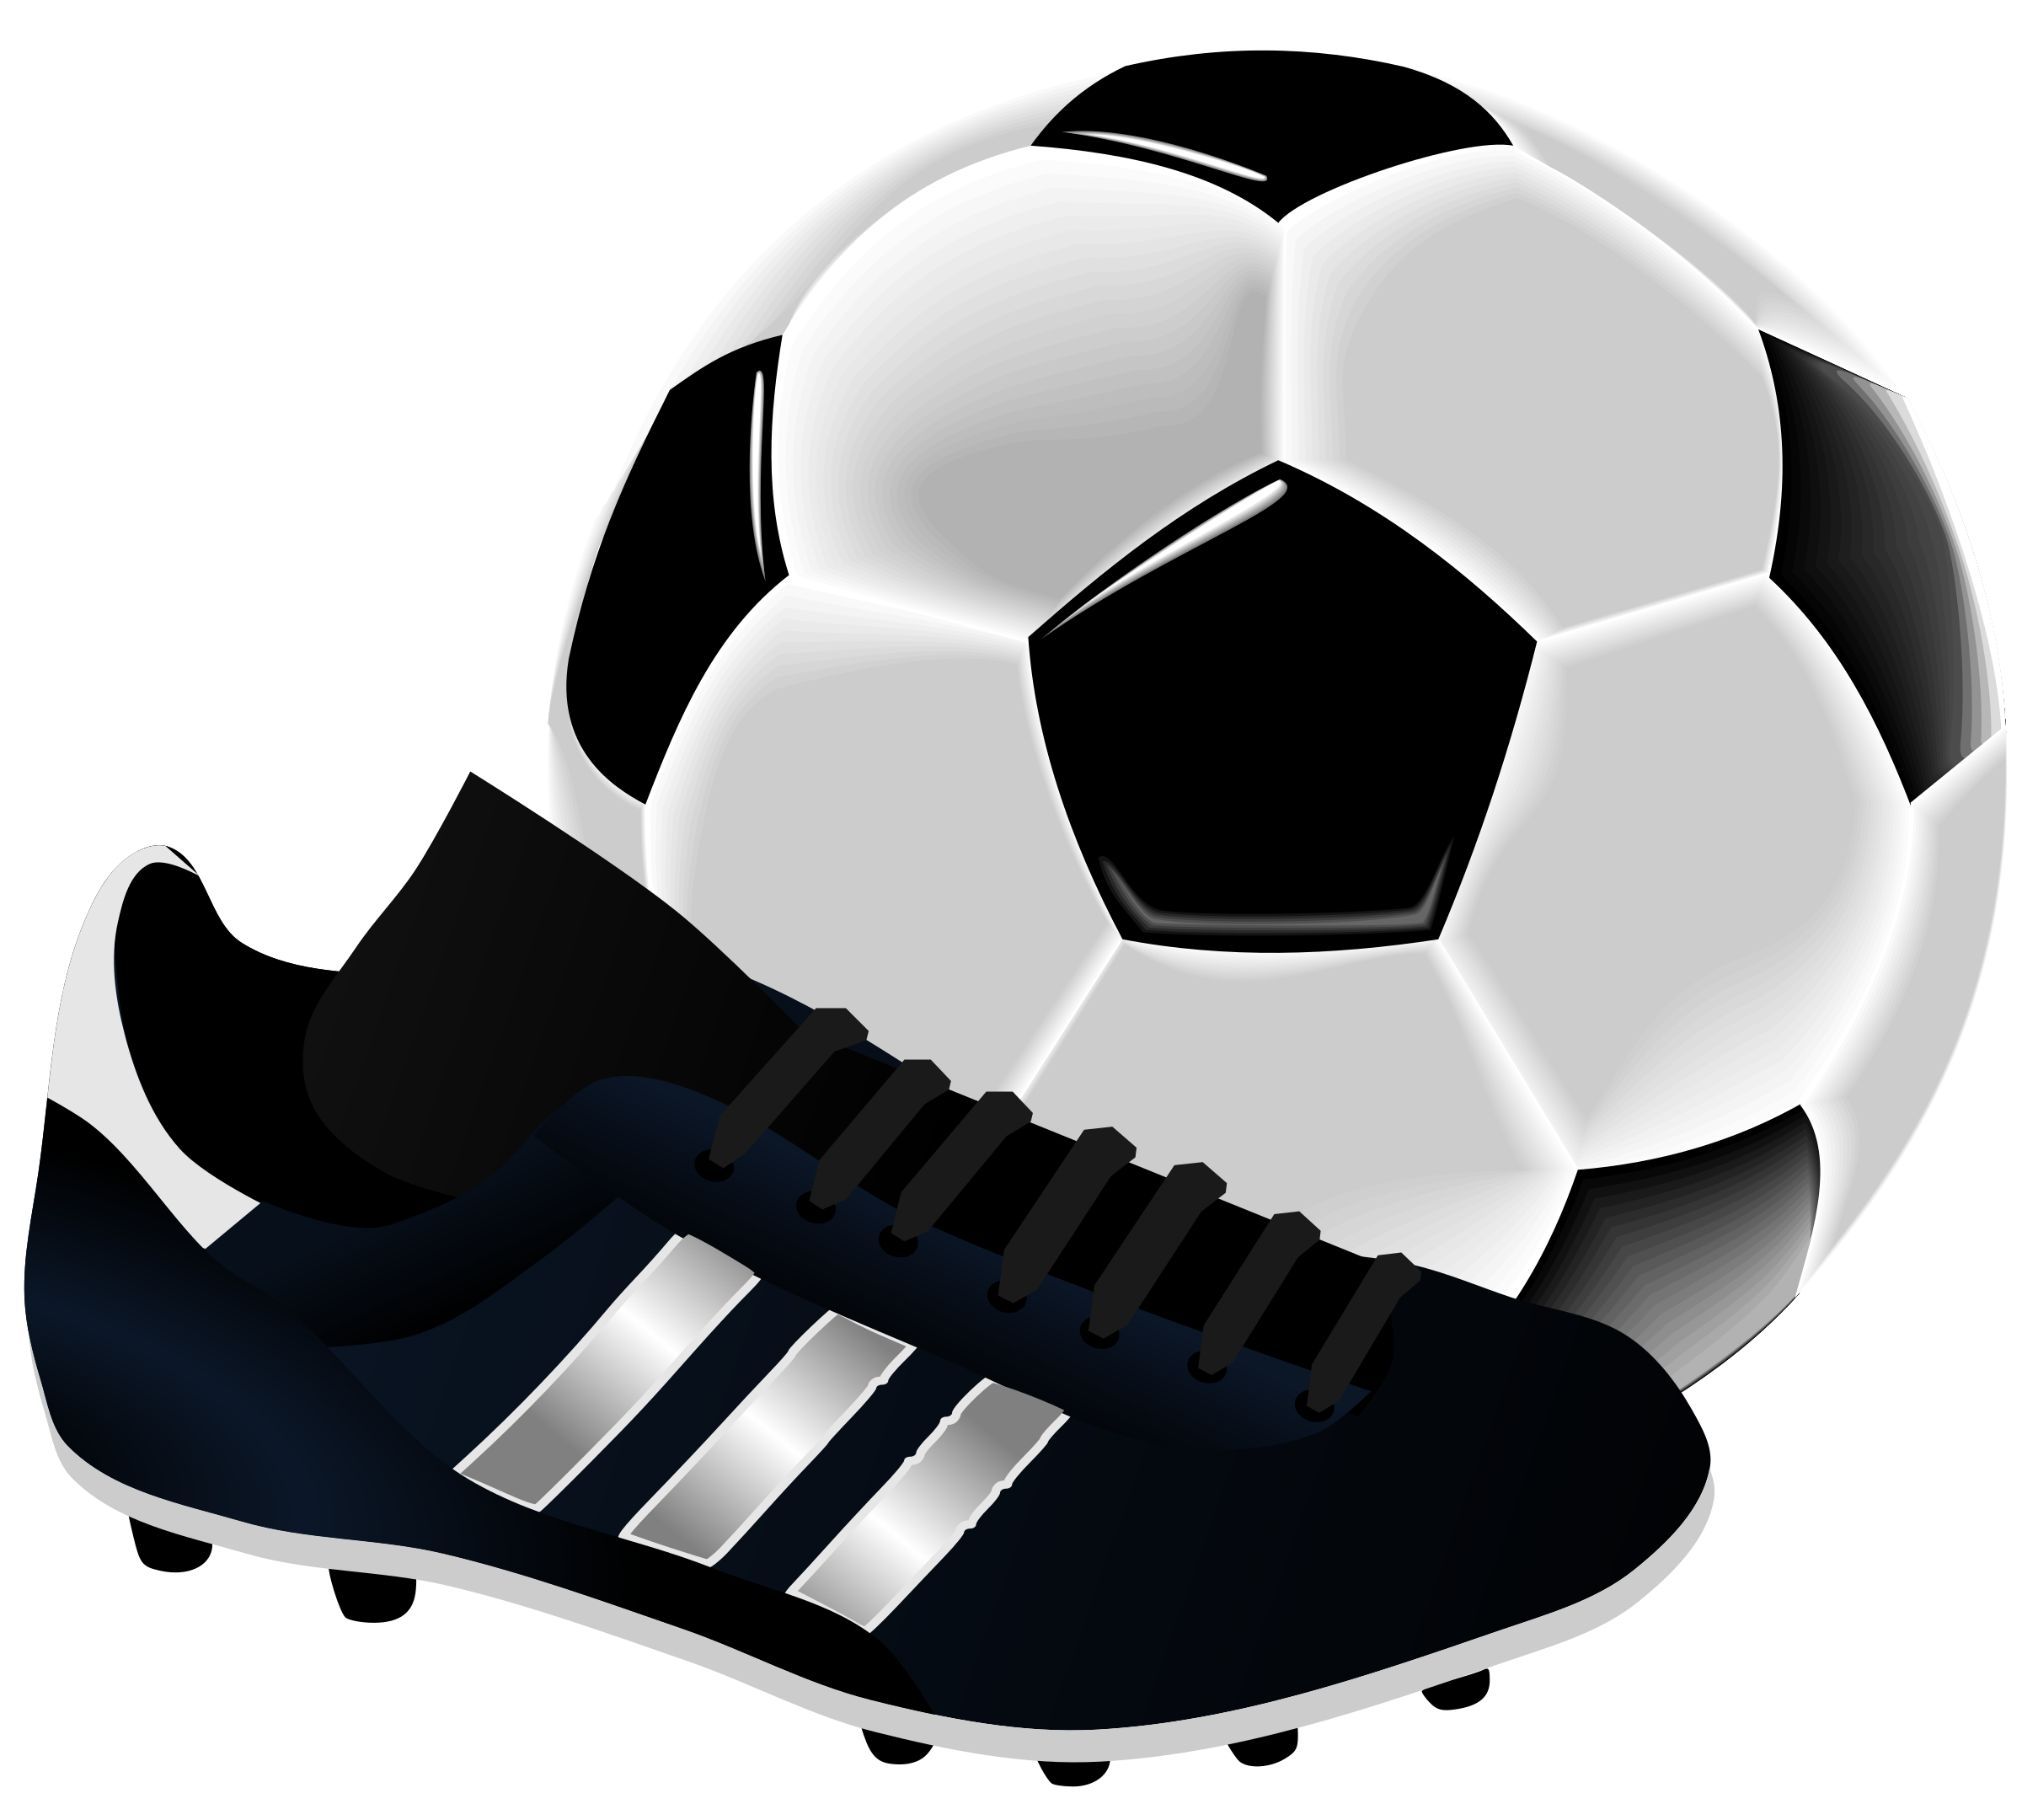 Icons png free and. Clipboard clipart soccer